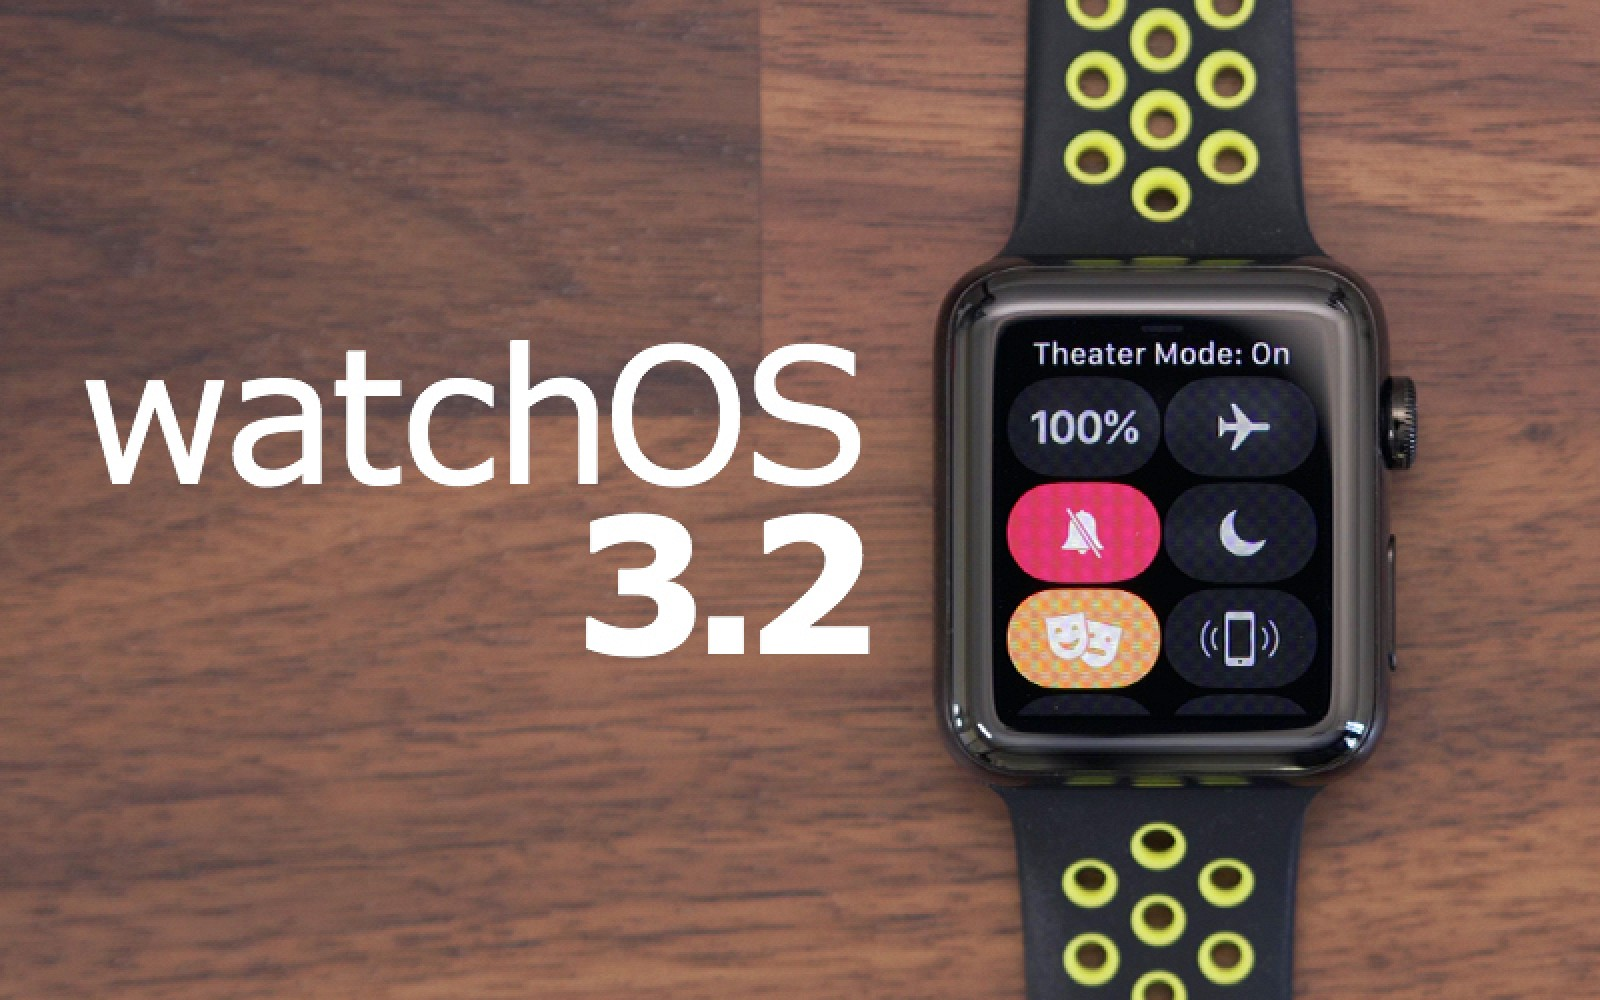 Apple Releases WatchOS 3.2 with Theater Mode and SiriKit